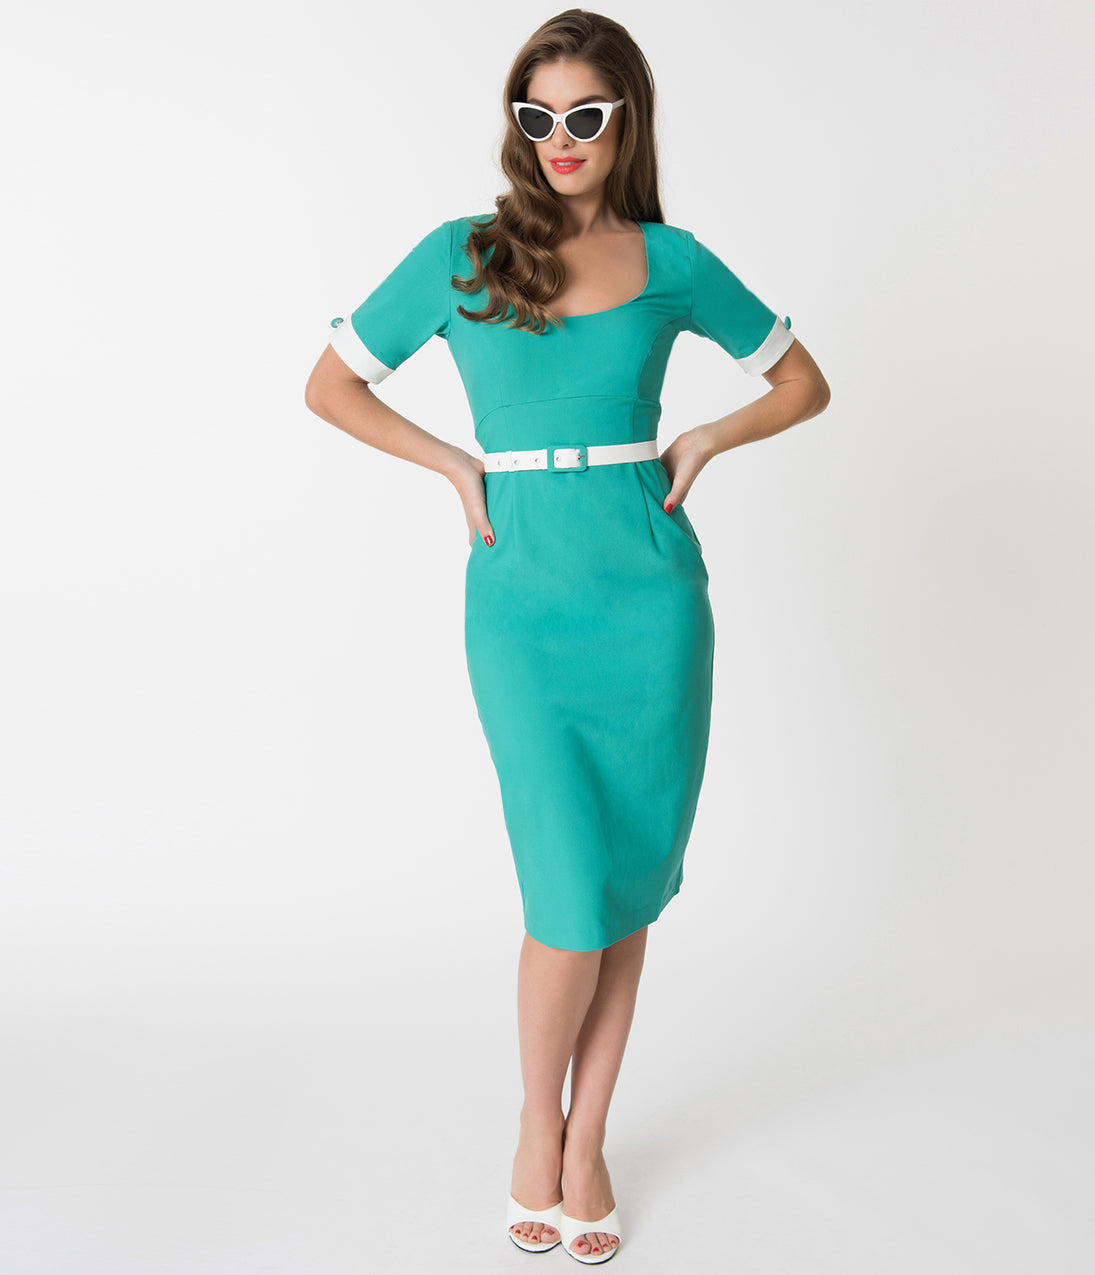 Pin Up Dresses | Pin Up Clothing Glamour Bunny Turquoise Green  White Annie Pencil Dress $132.00 AT vintagedancer.com